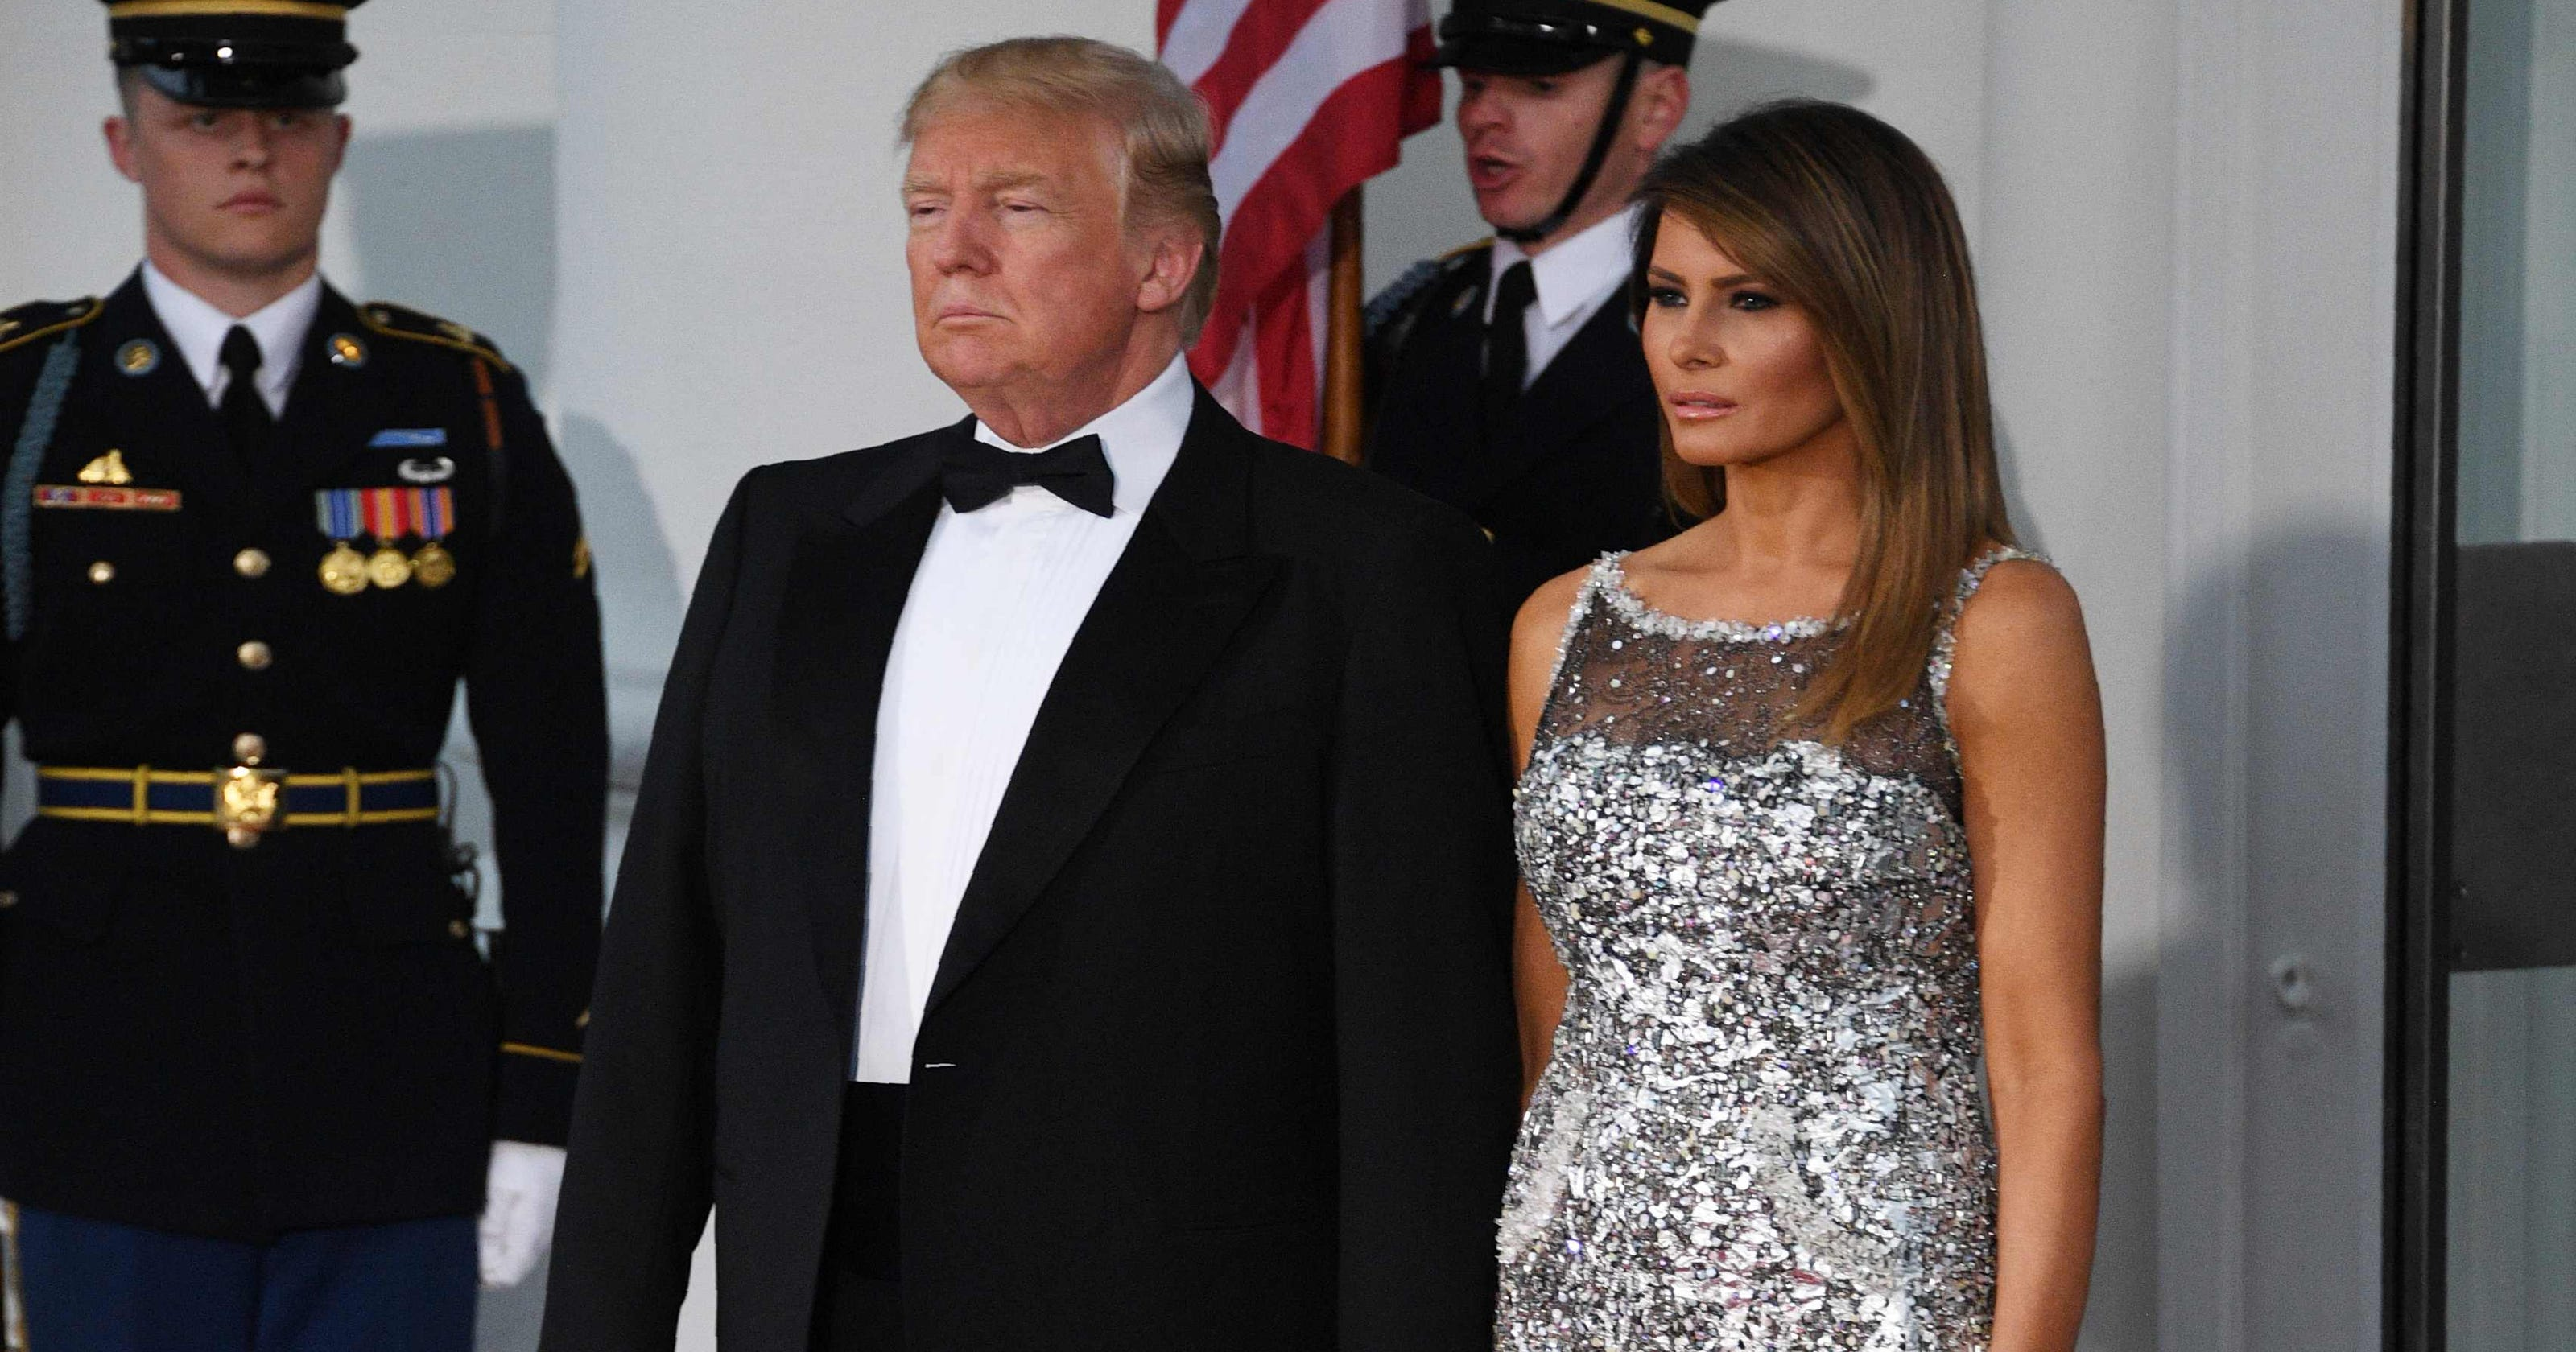 f3b236f3593 Trump says he s too busy to get Melania a birthday present